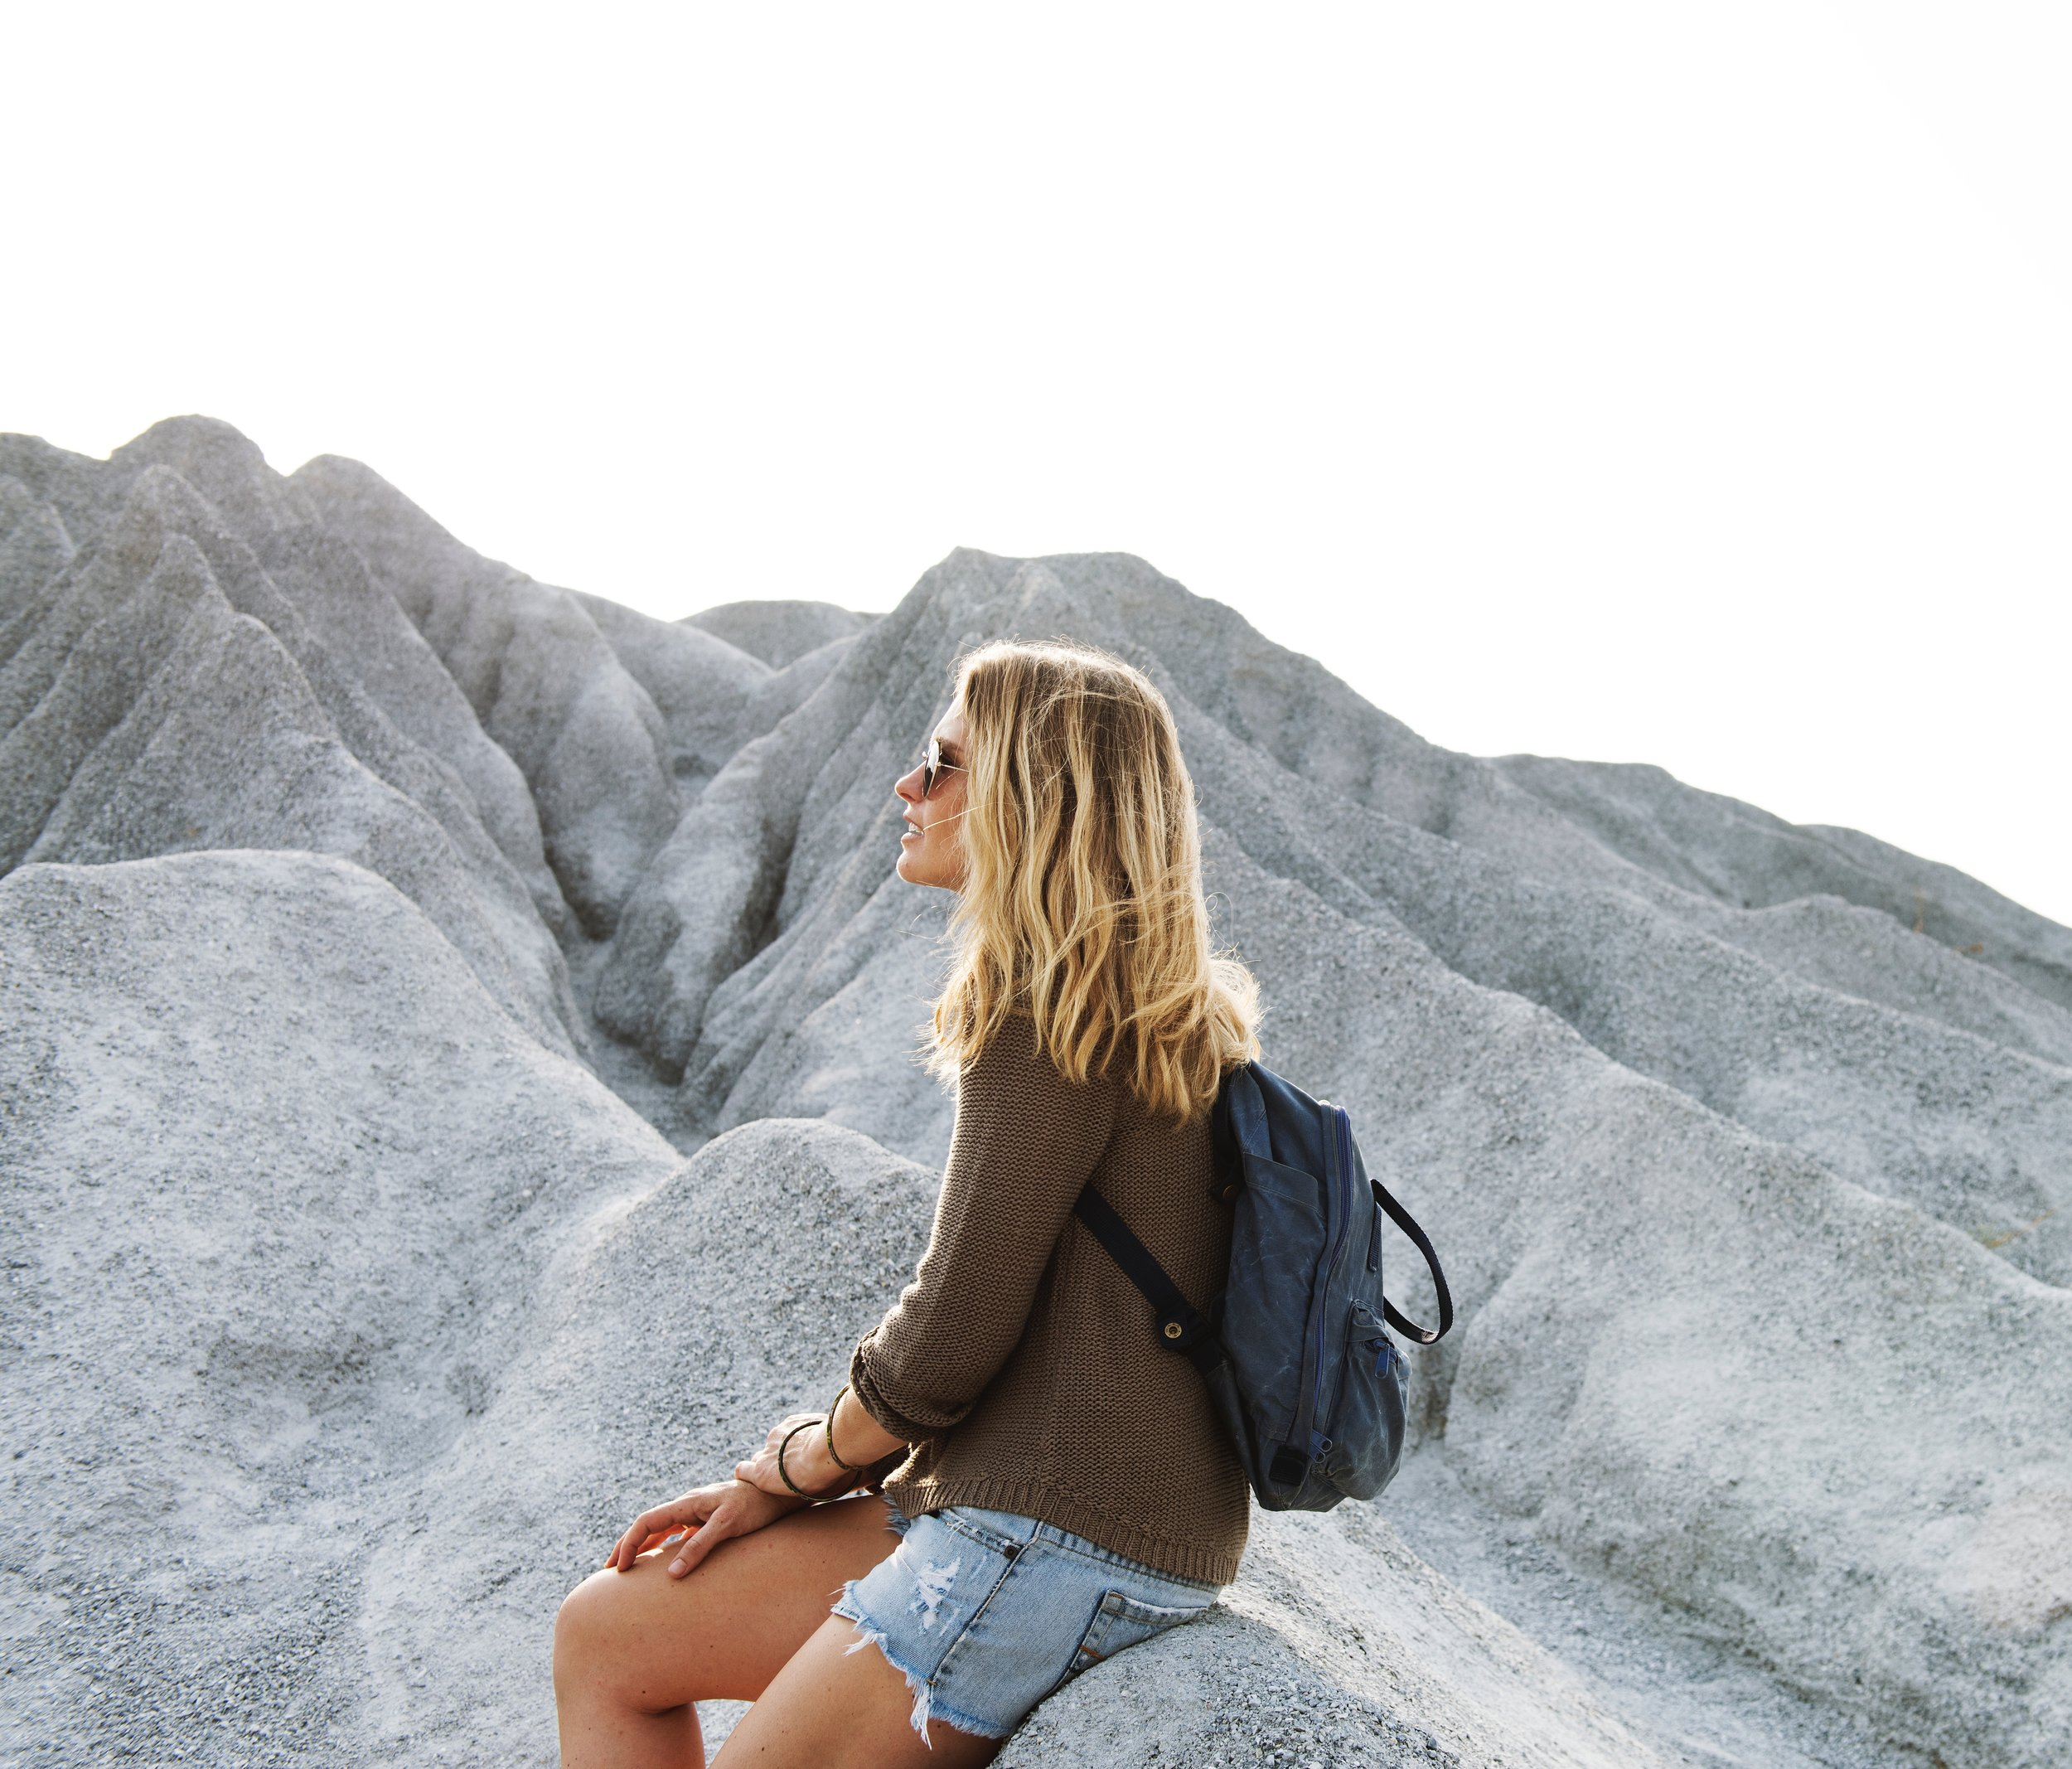 4 super easy ways to implement mindfulness in your daily routine in just one minute